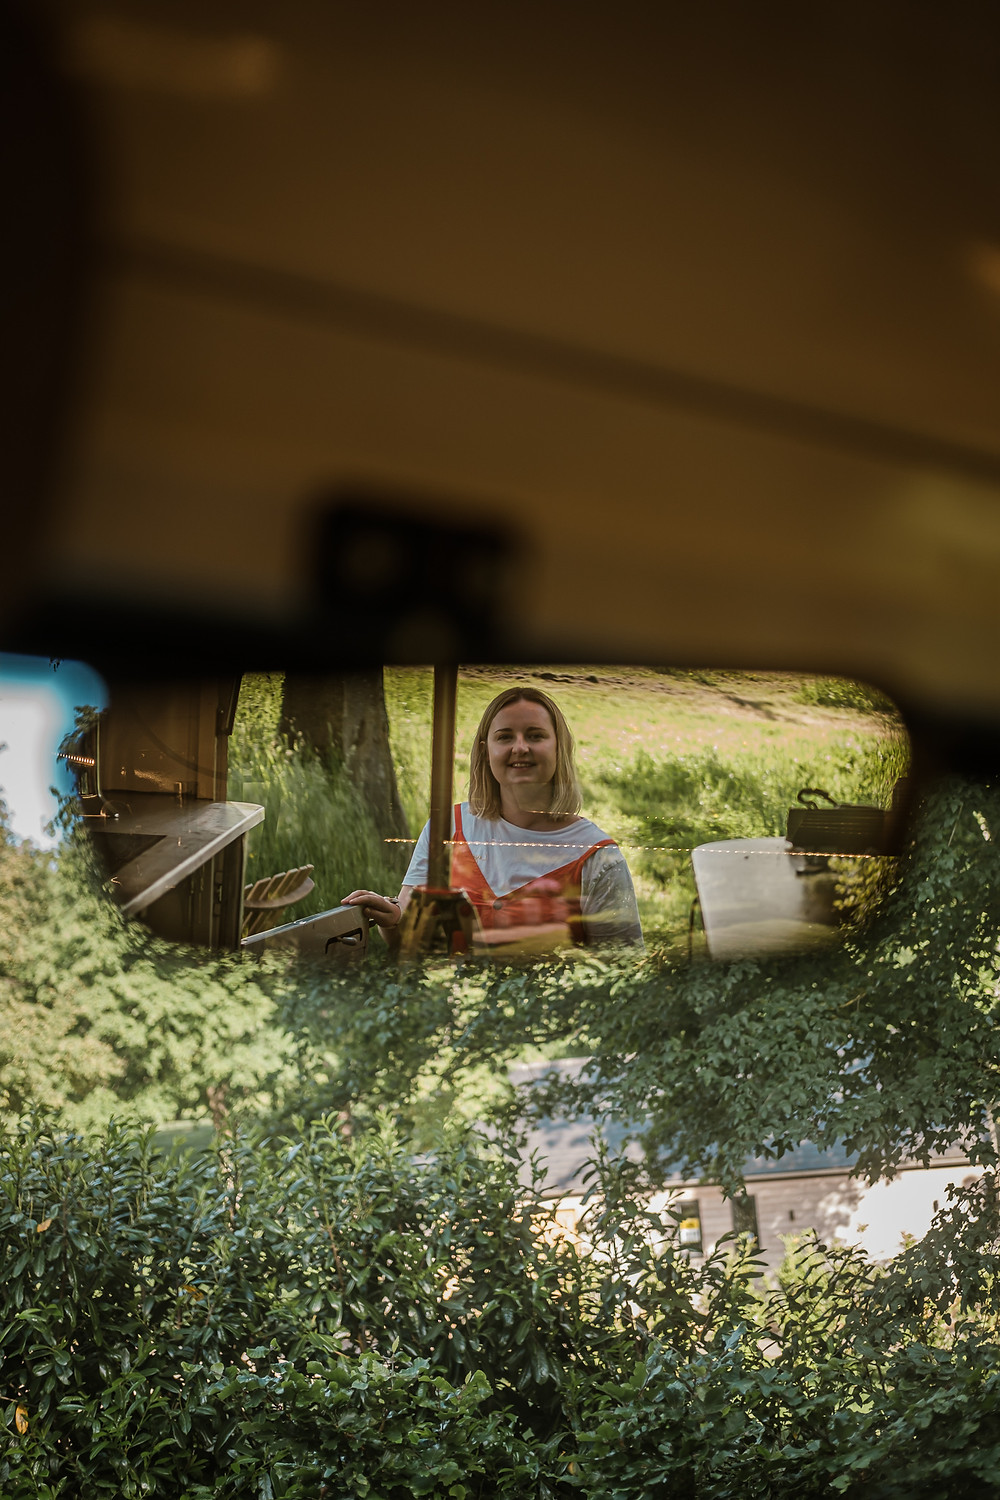 Hannah Isted Marketing in the rearview mirror of a van